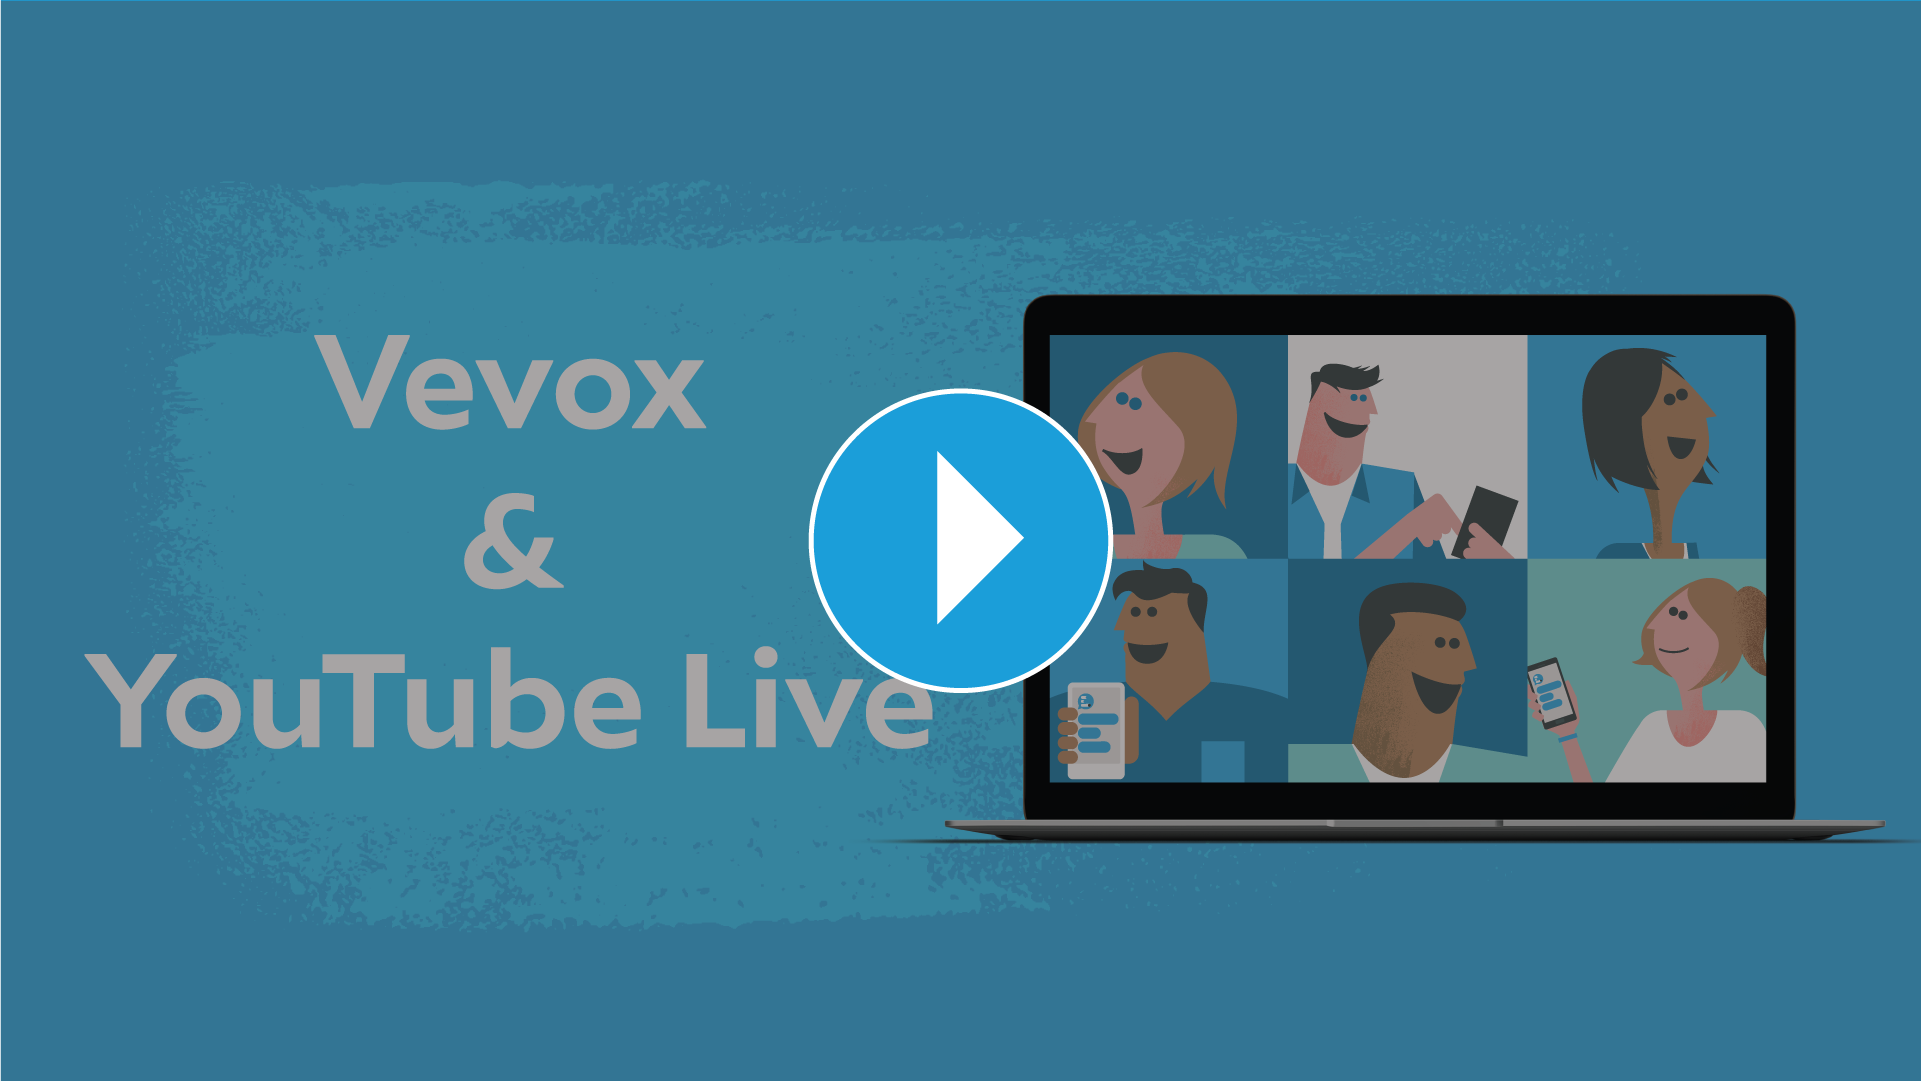 Vevox___YouTube_Live.png